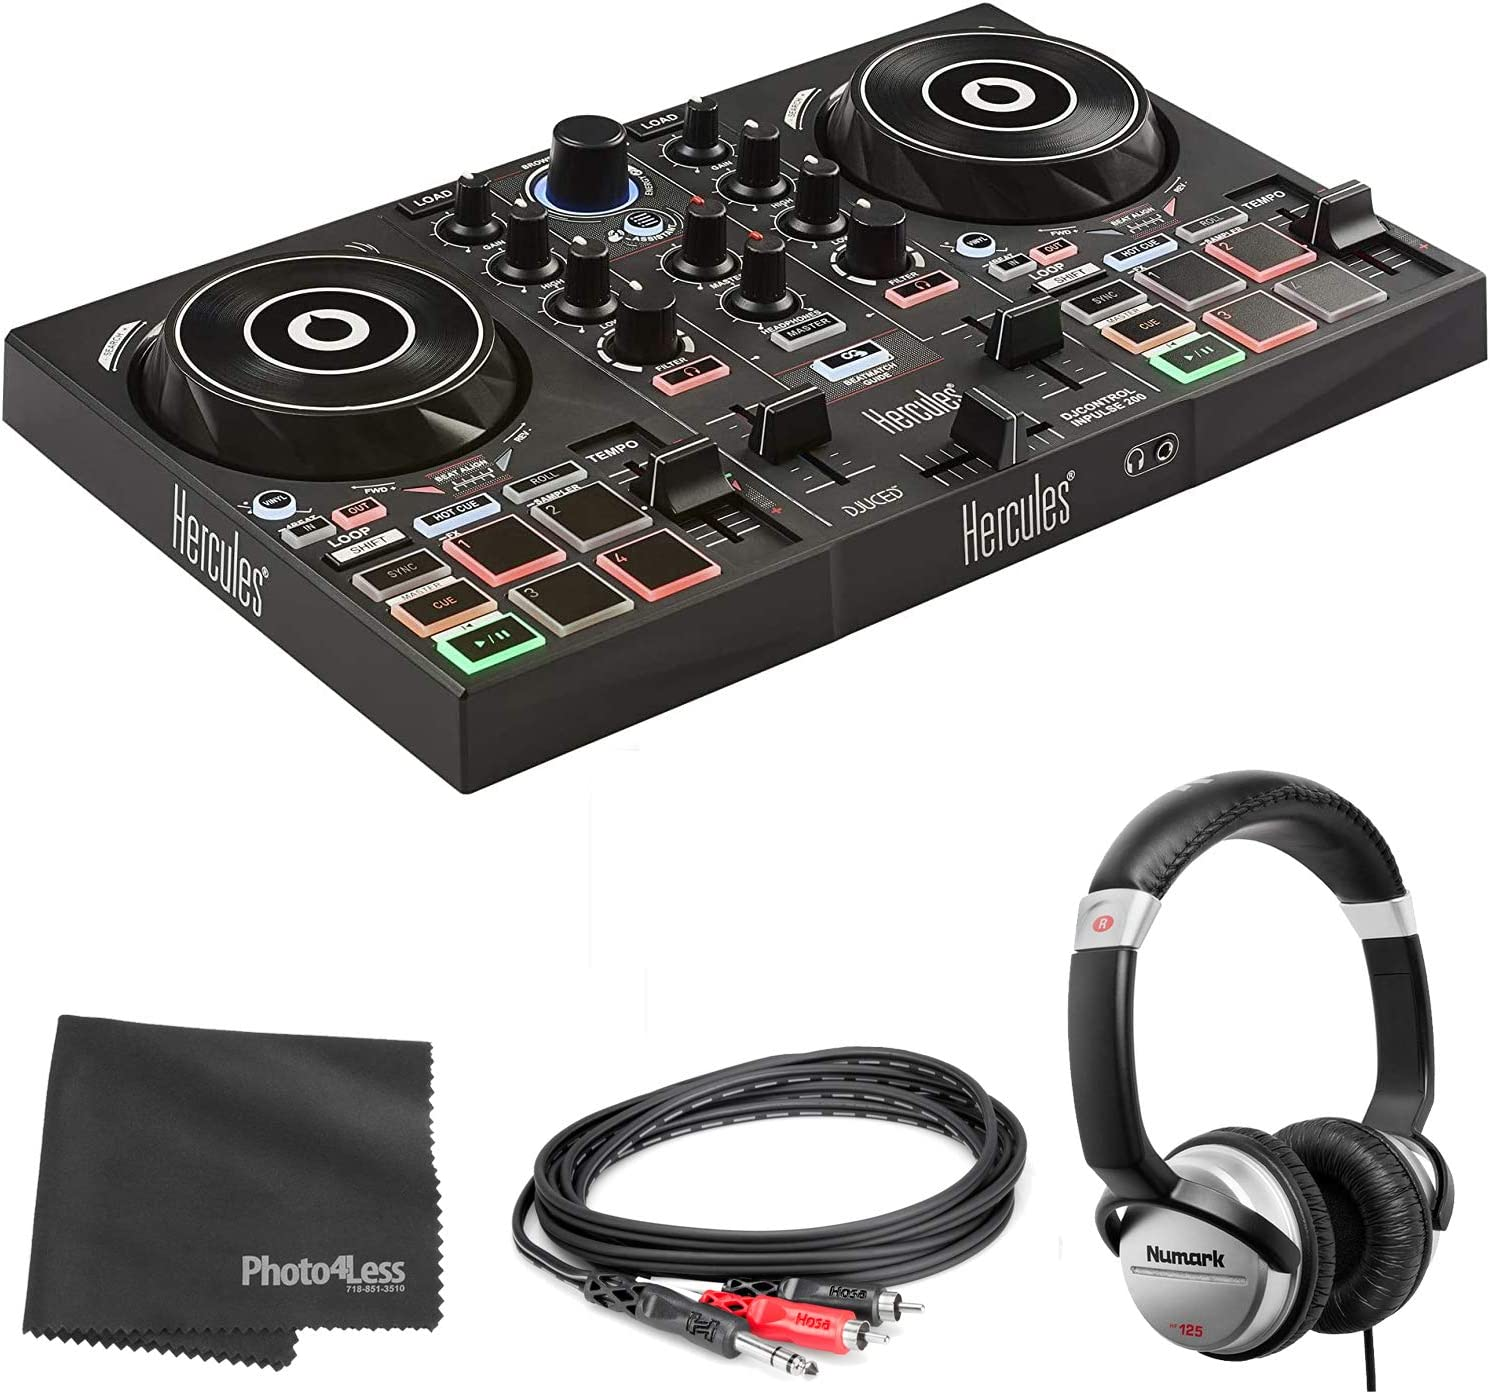 Hercules DJ Indianapolis Mall Control Inpulse 200 Portable Controller USB wit Cash special price